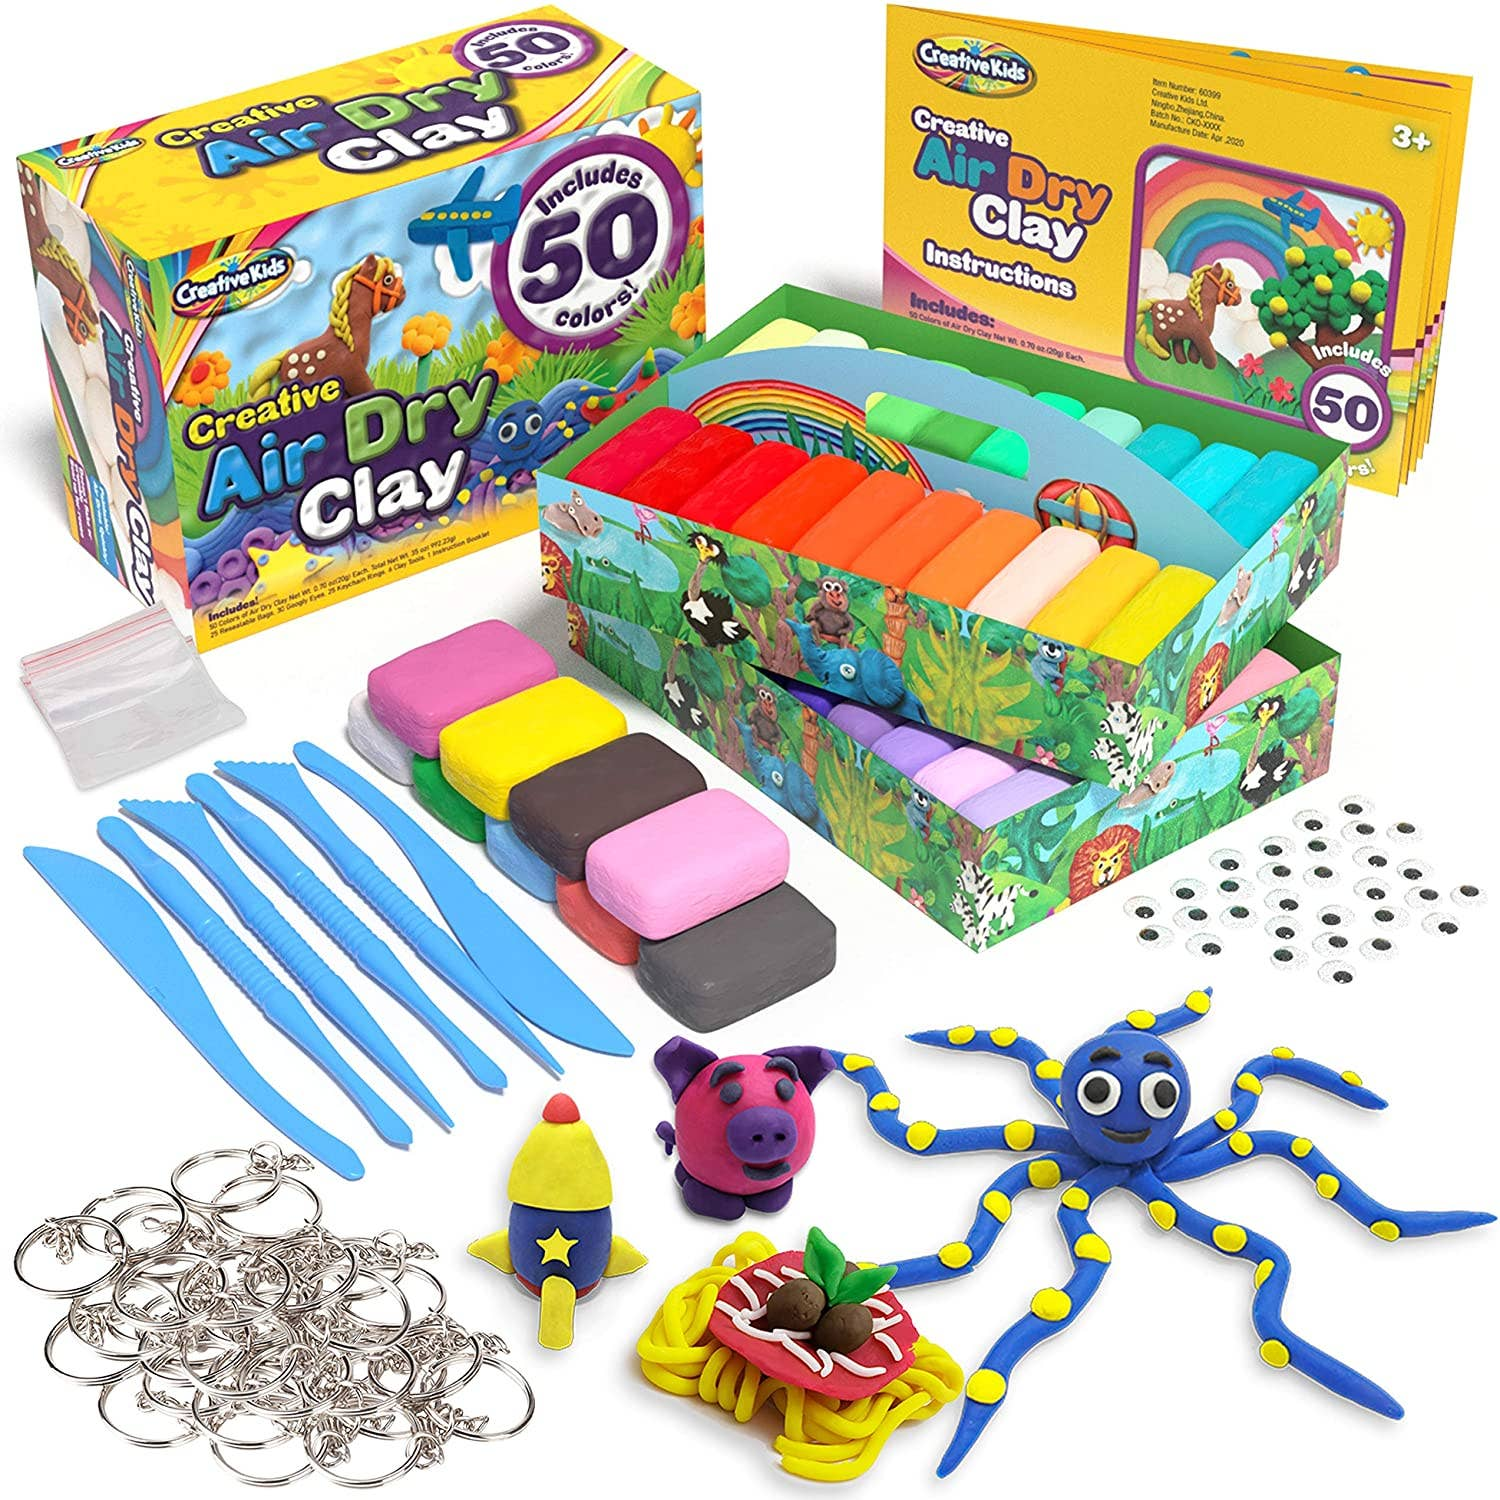 50 Pack Of Air Dry Clay Modeling Crafts Kit